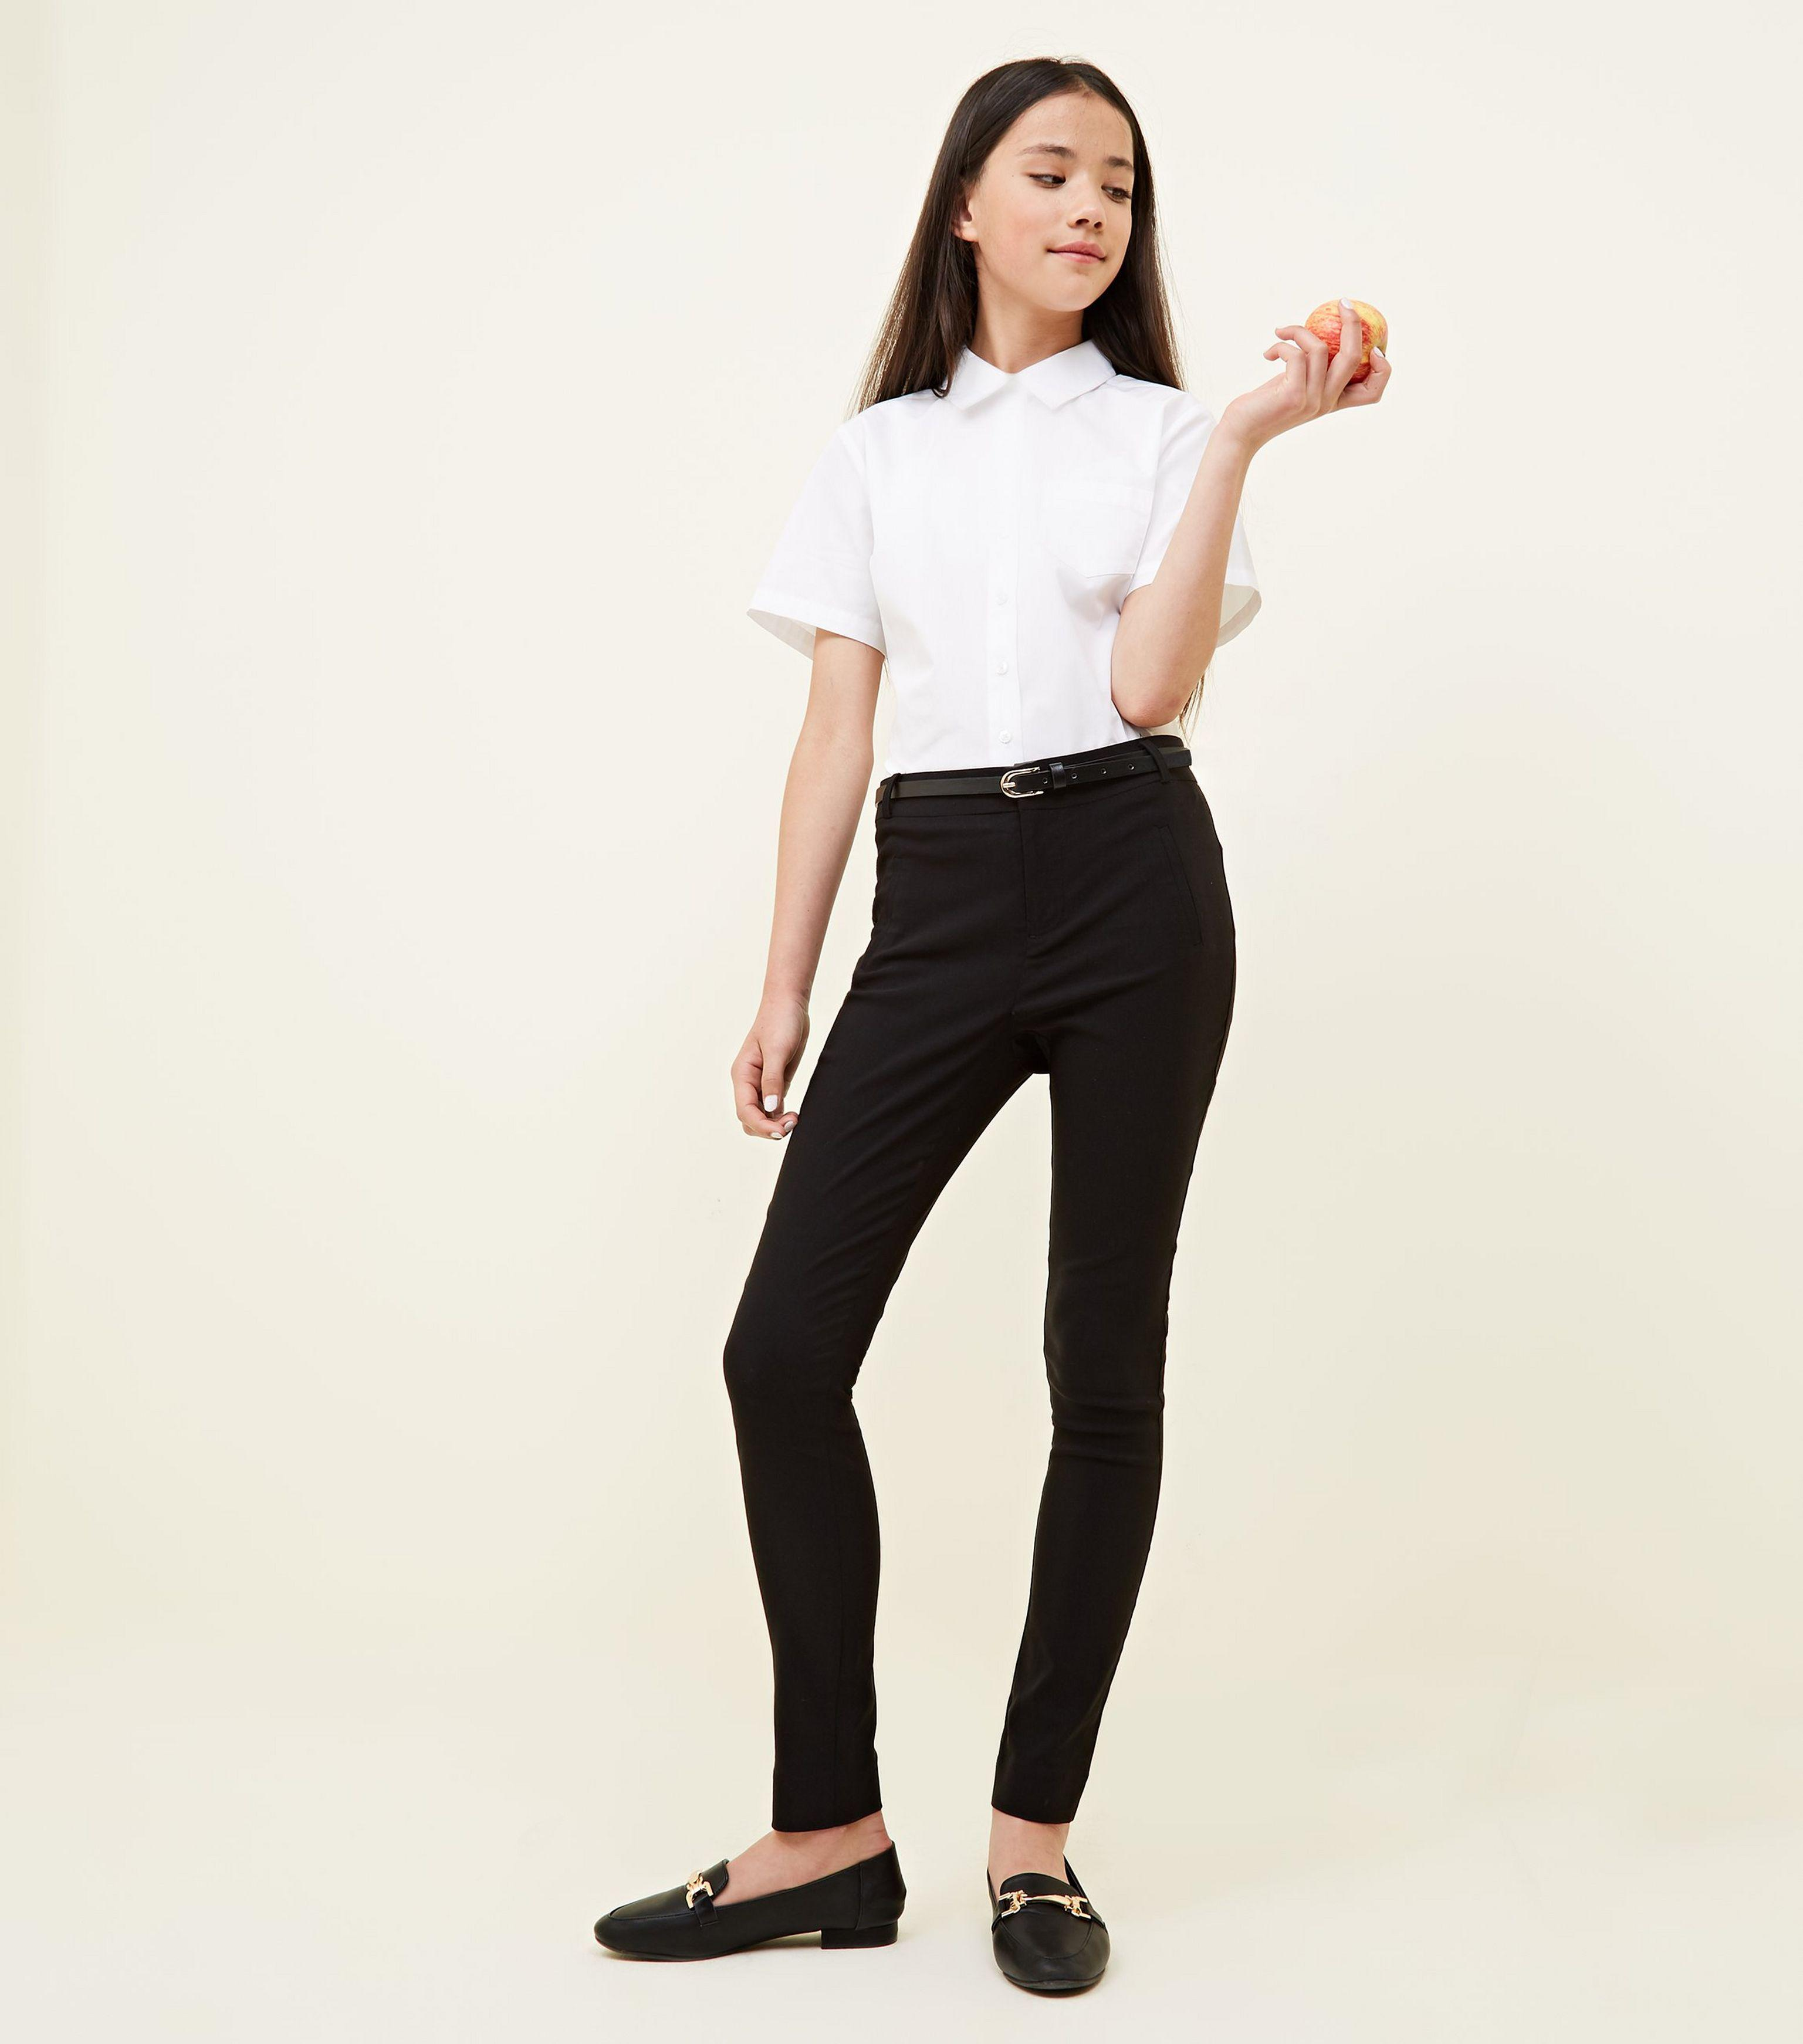 cc9f3b568cdac New Look Girls Black Belted Slim Leg Trousers in Black - Lyst